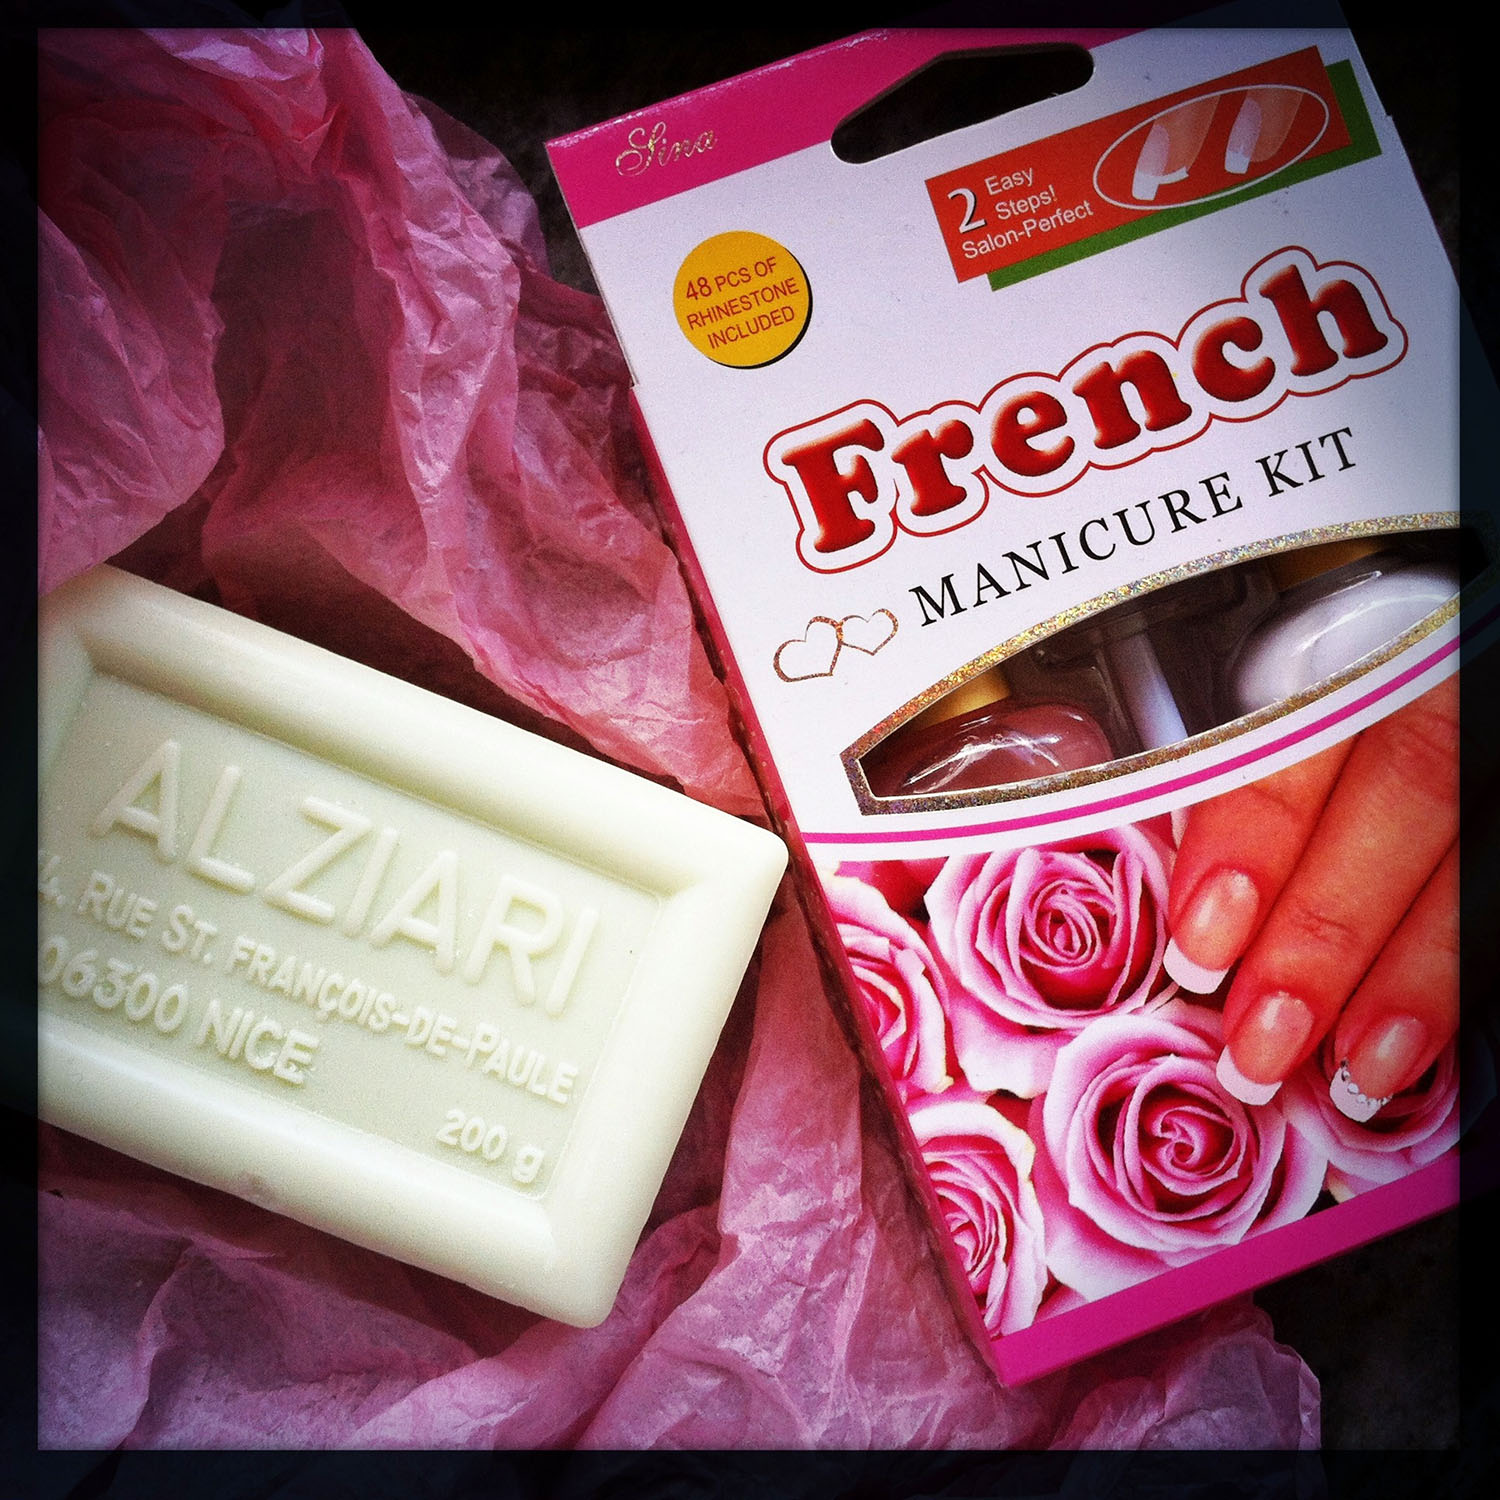 French manicure set and olive oil soap from Nice